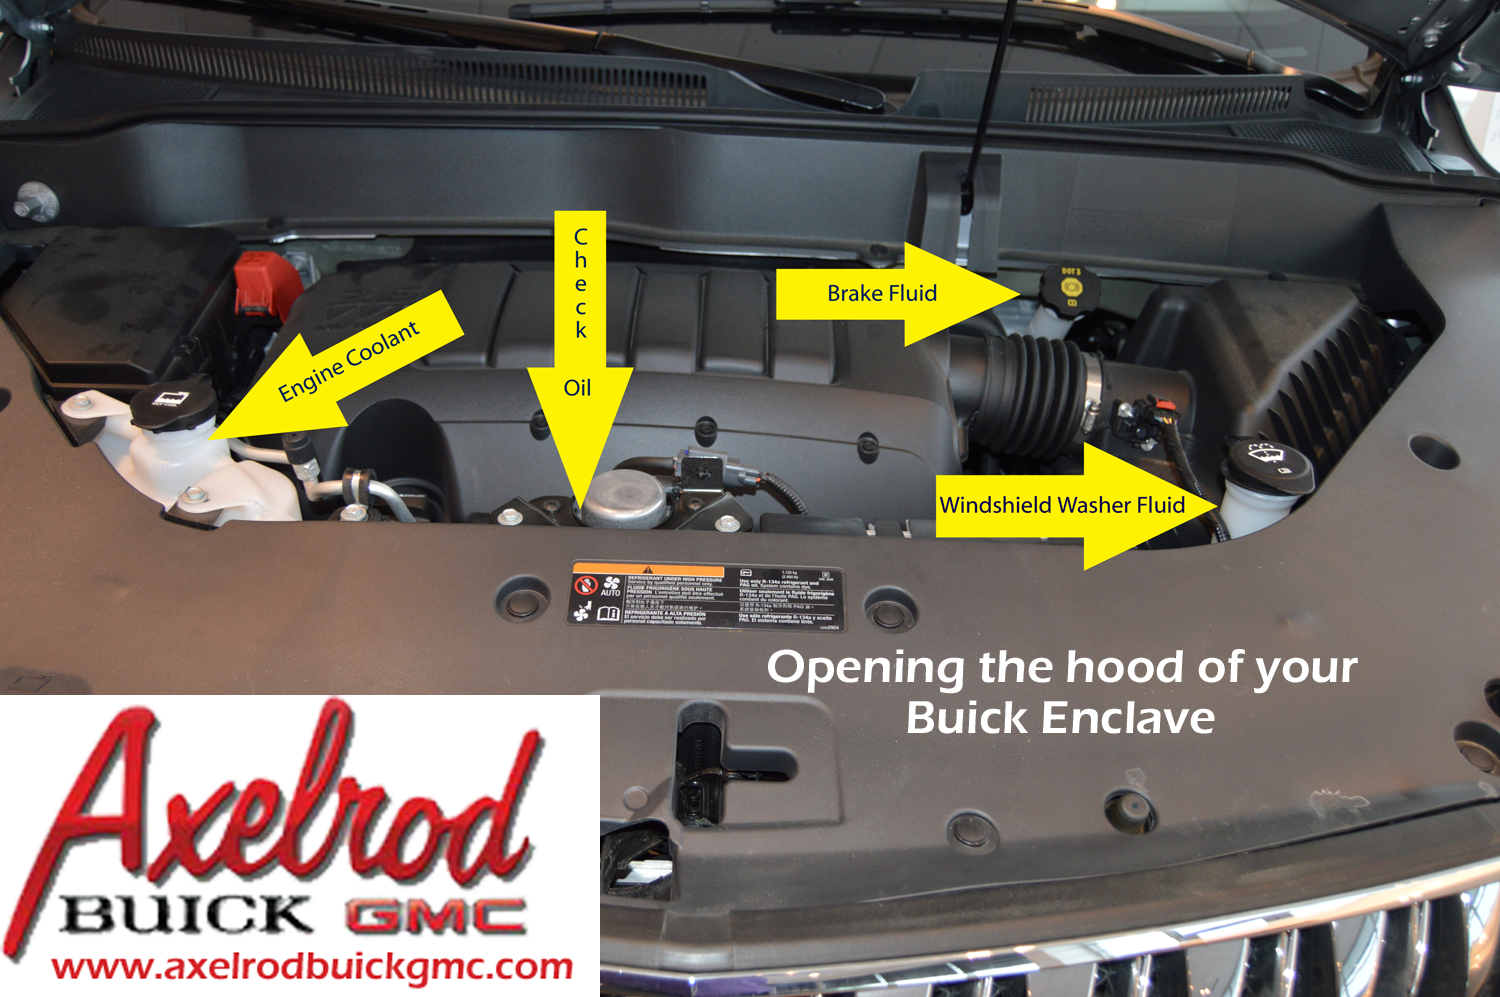 hight resolution of finding the hood latch on your buick enclave ask axelrod buick gmc in cleveland